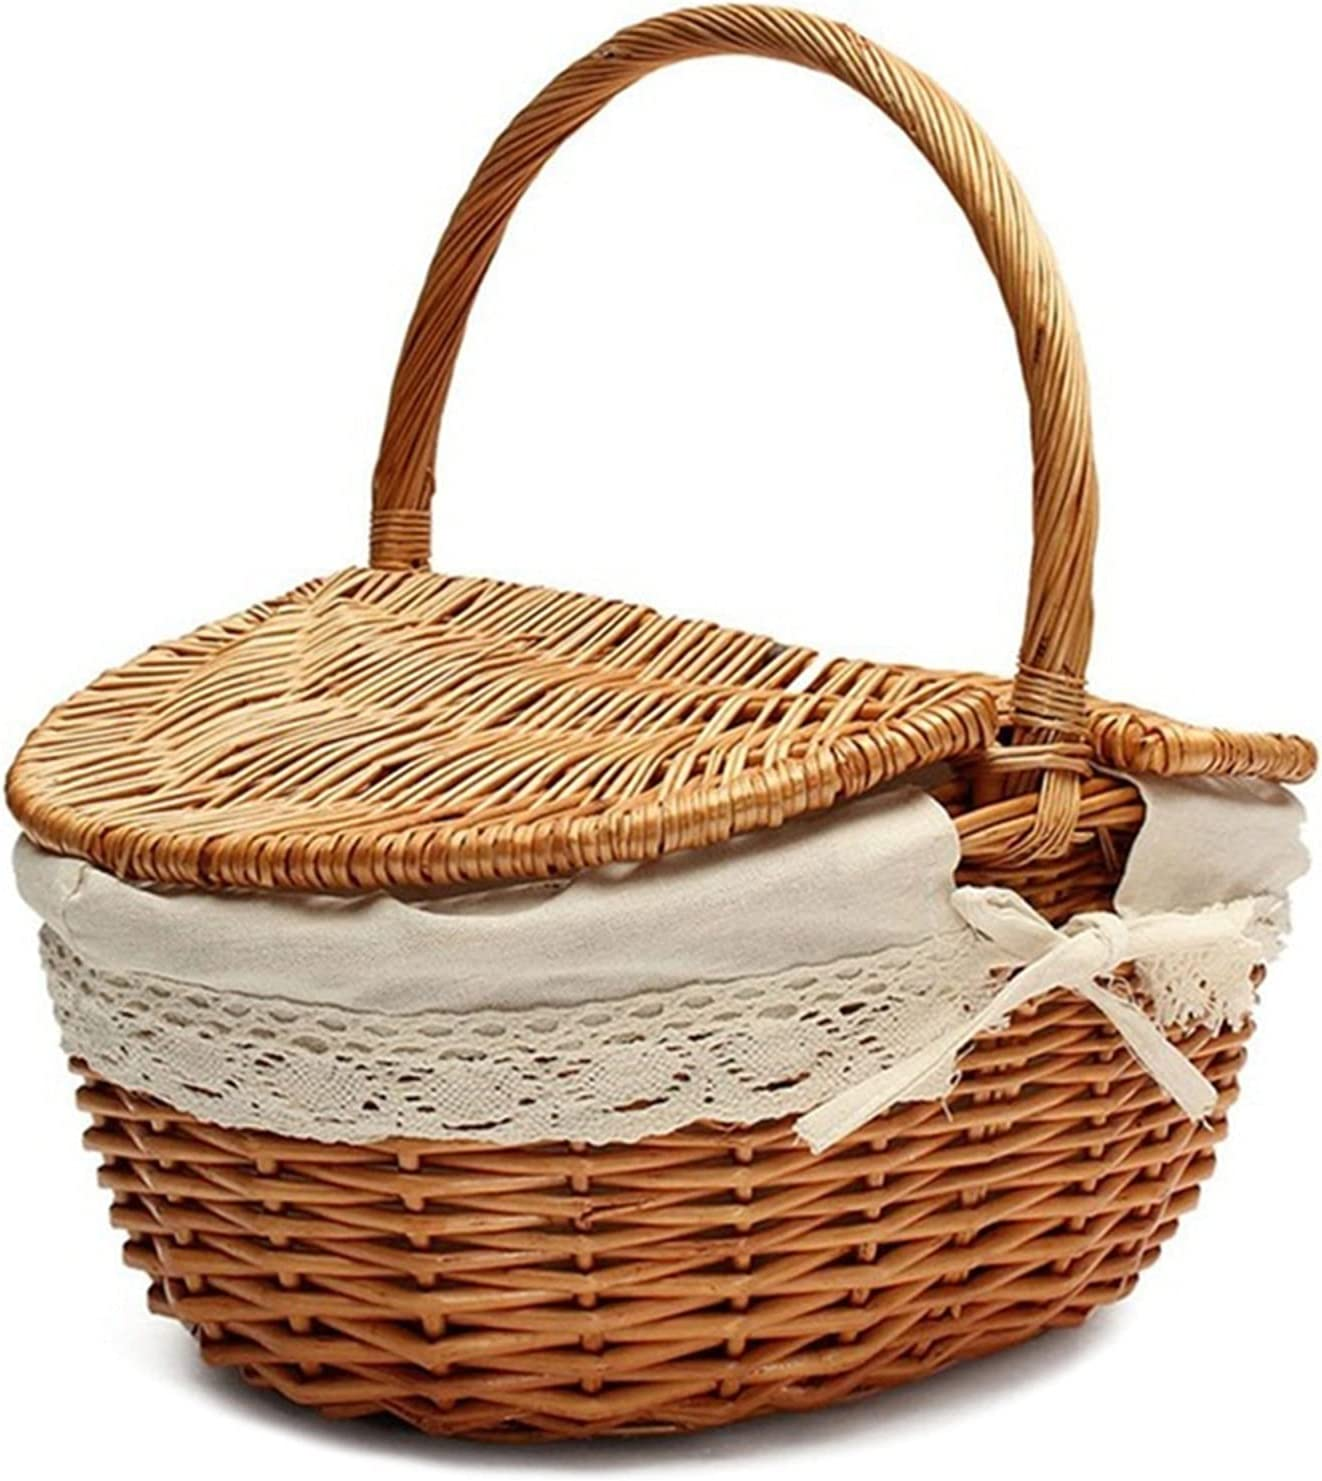 Storage basket Year-end gift New-Handmade Max 51% OFF Wicker Handle with Basket Cam